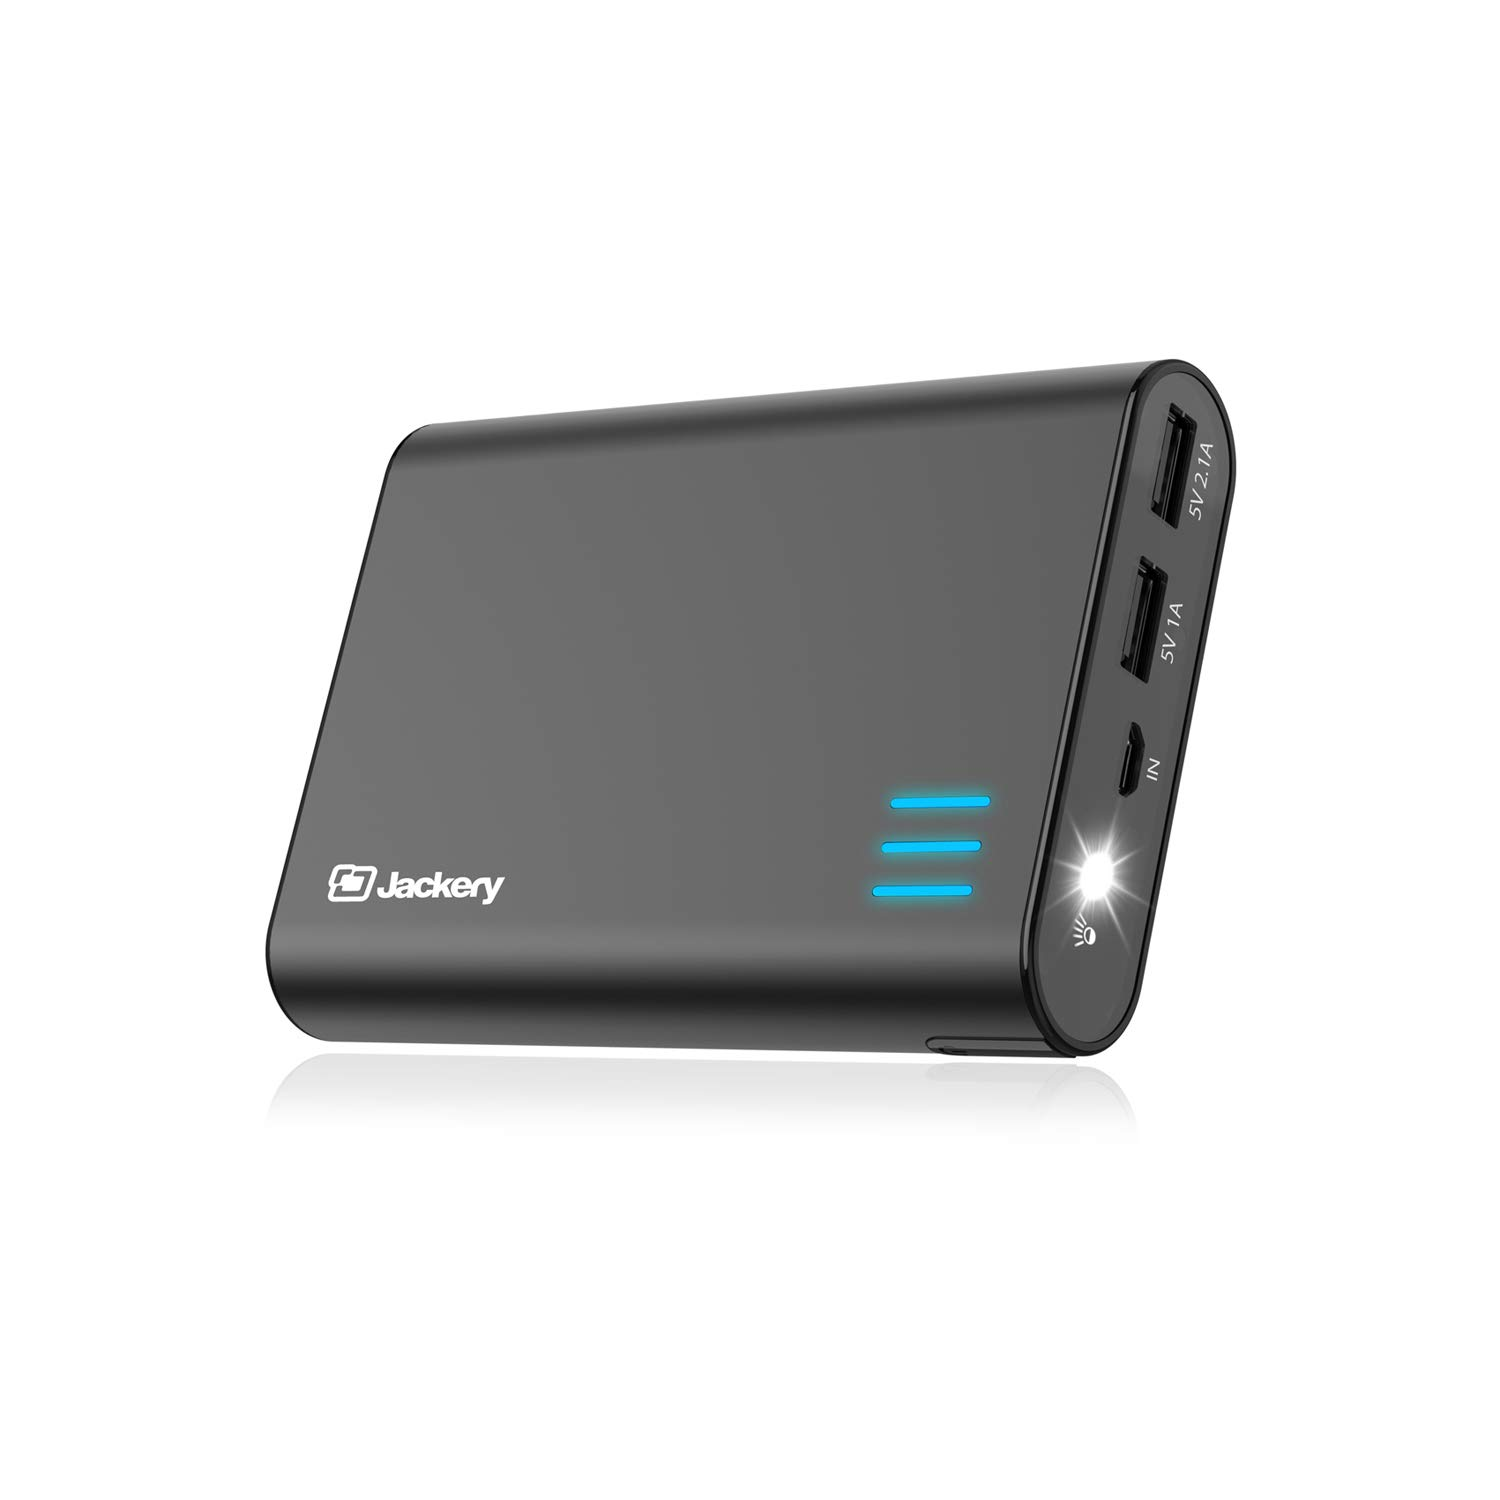 Jackery Portable External Charger Giant+ 12000mAh Dual USB Output Battery Pack Travel Backup Power Bank with Emergency LED Flashlight for iPhone, Samsung and Other Smart Devices - Black